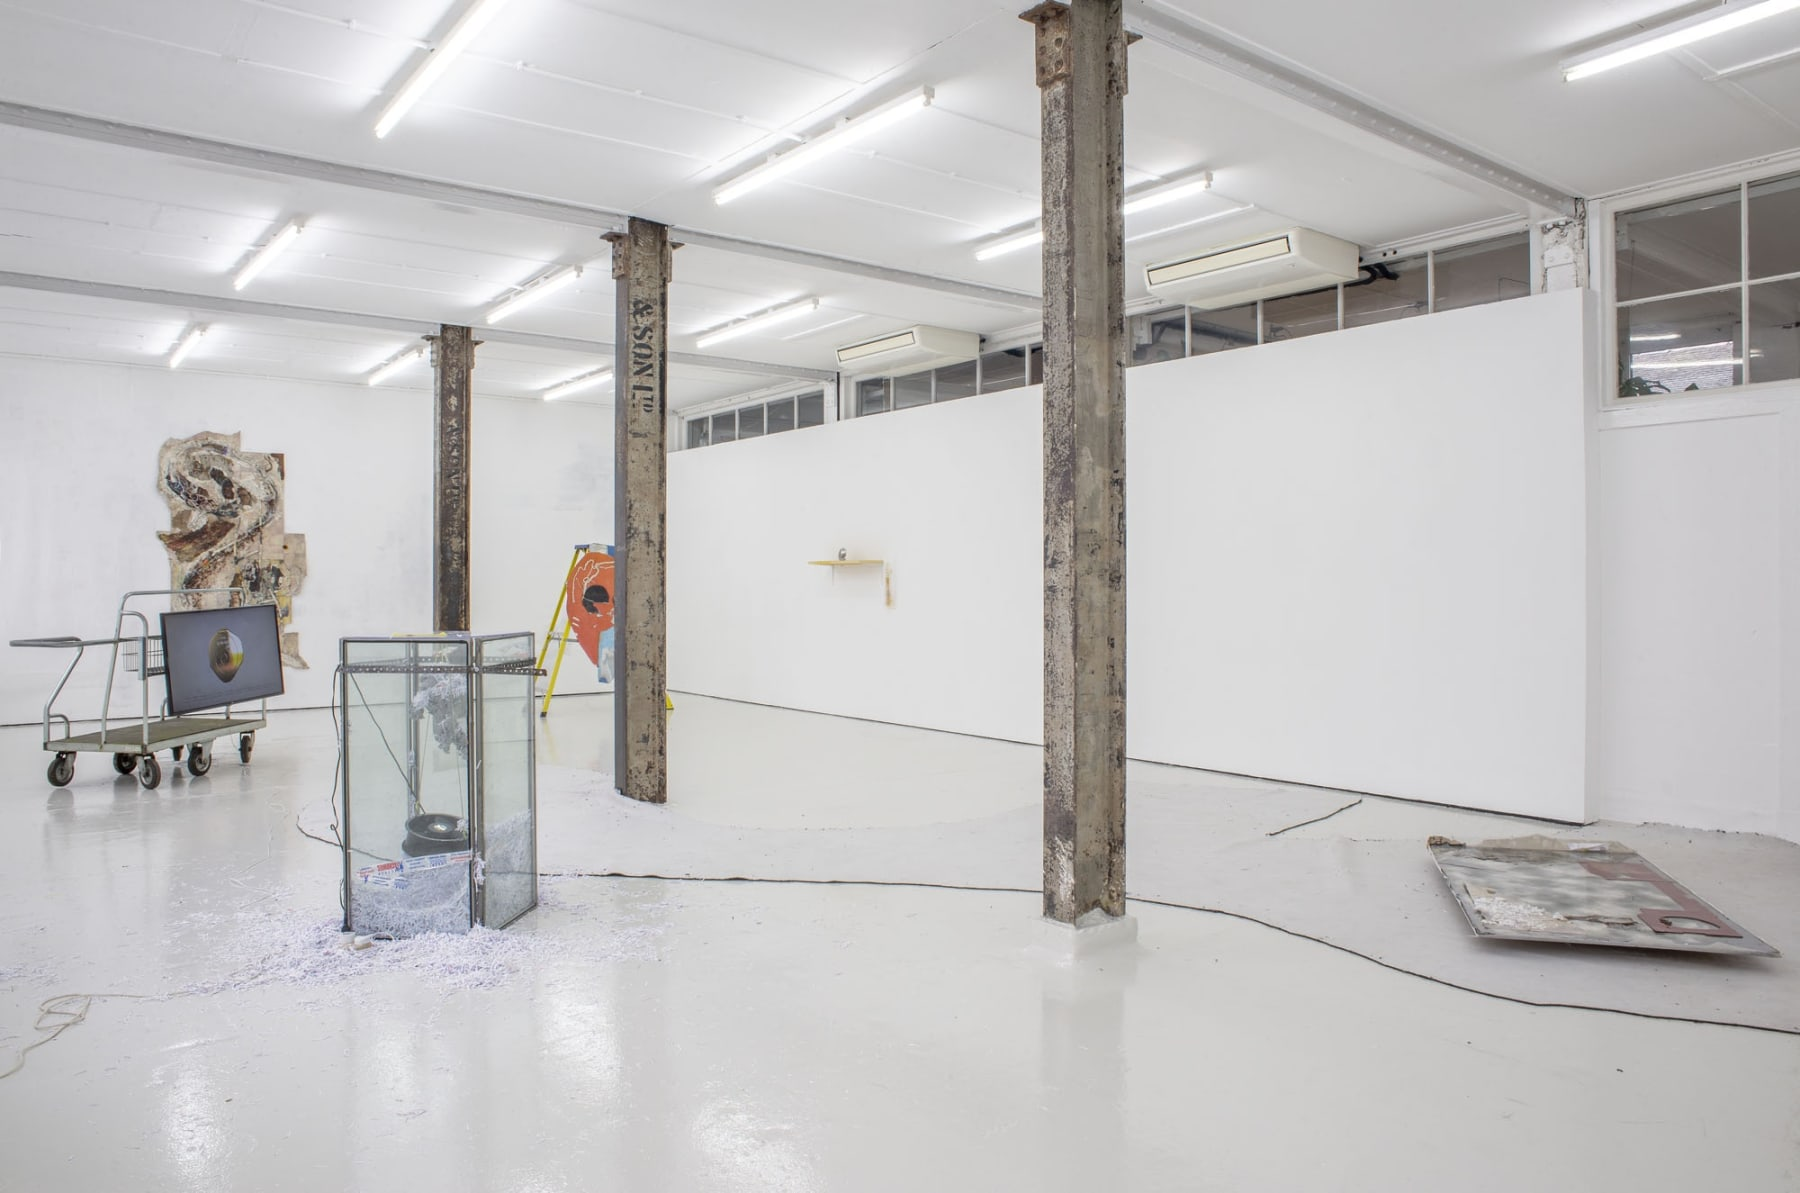 David Dale Gallery, Glasgow, 2019 Robertas Narkus solo show Prospect Revenge at David Dale Gallery Glasgow, 2019 Curated by Rupert, Vilnius Image copyright and courtesy of the artist and David Dale Gallery, Glasgow